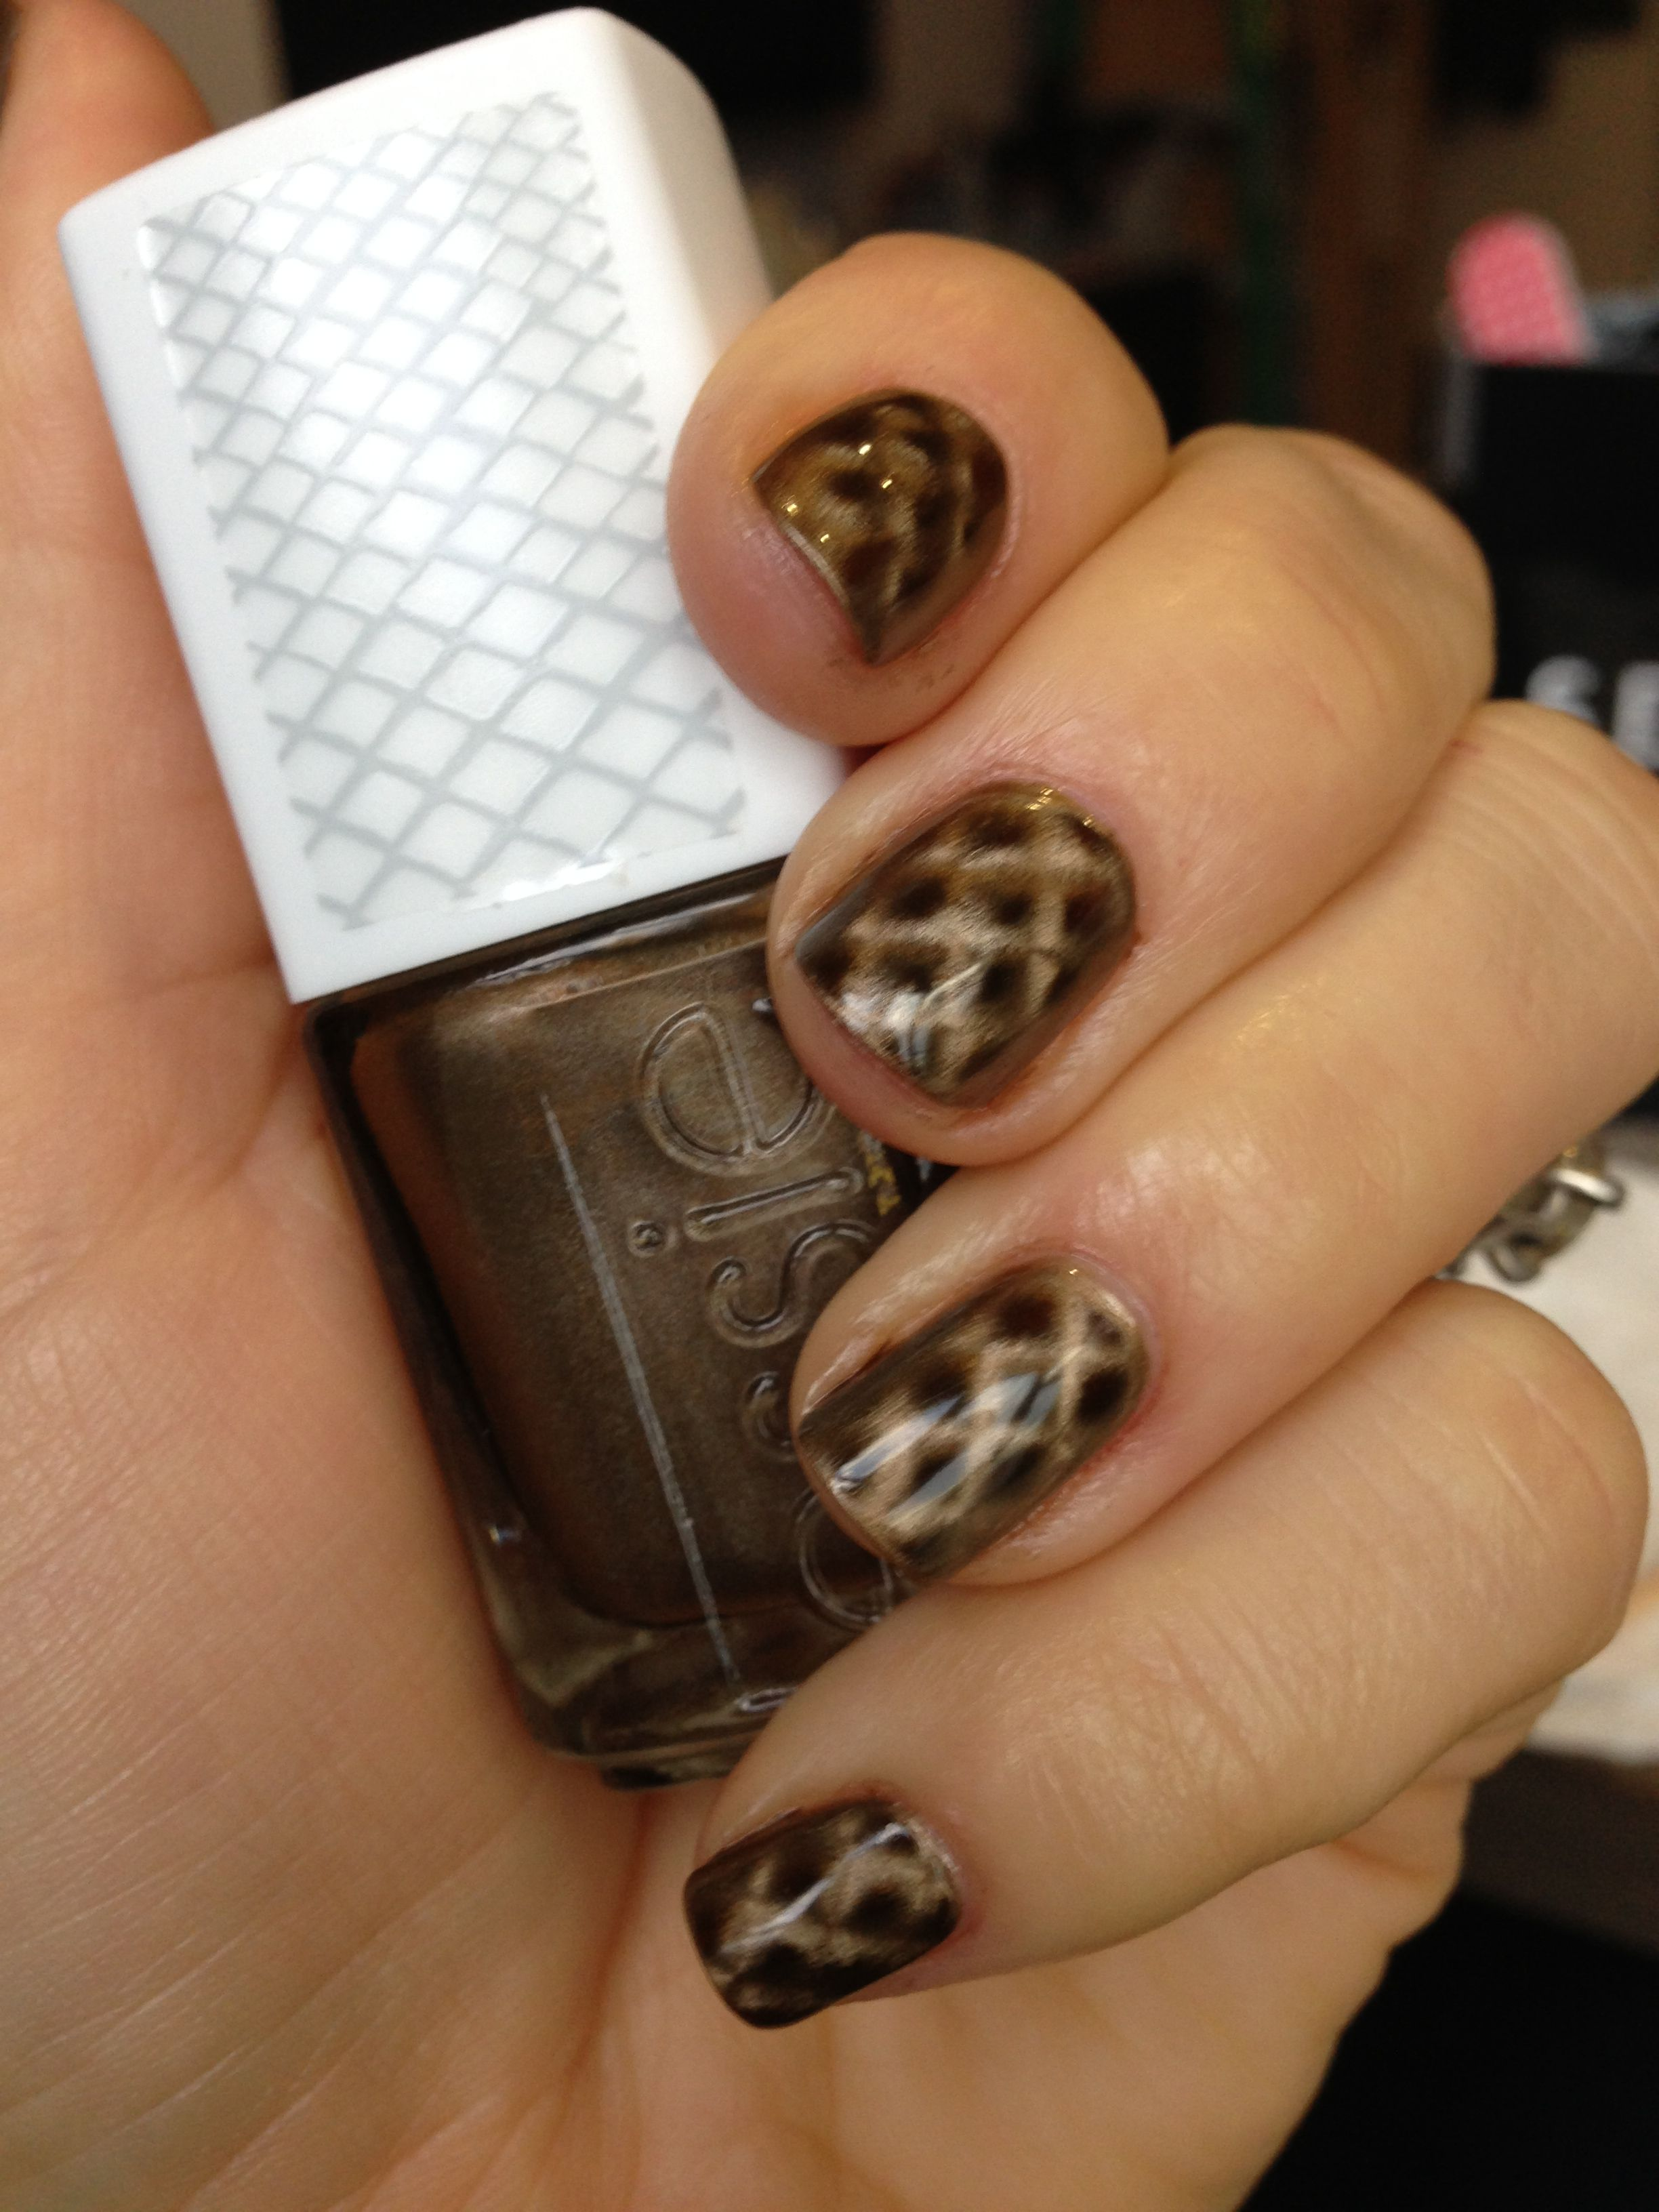 Snakeskin / fishnet nails Essie Repstyle magnetic nail polish ...